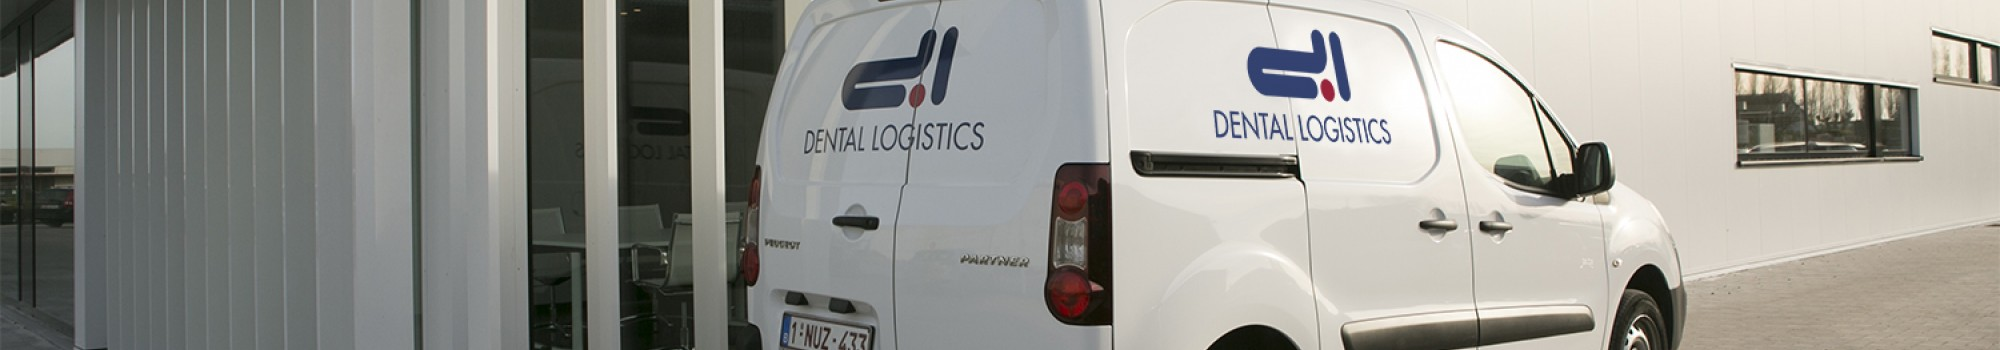 Dental Logistics